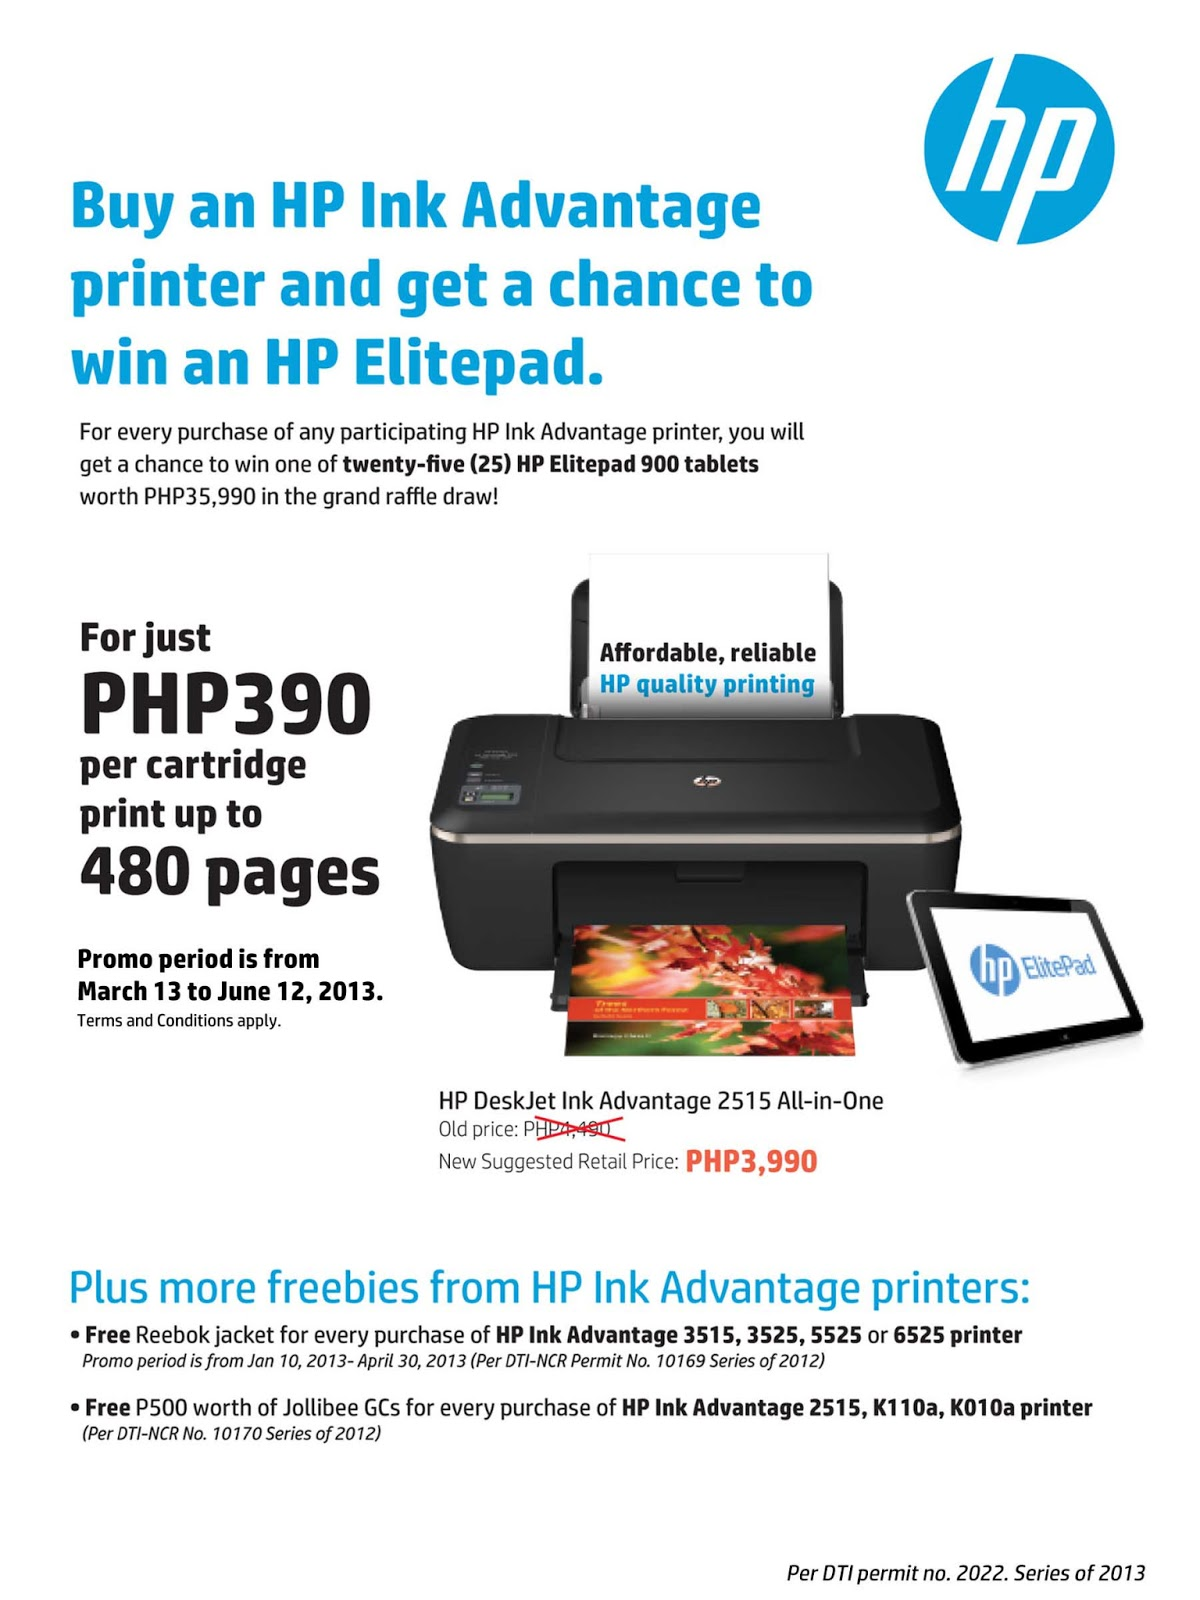 HP Ink Advantage Printers Raffle Promo